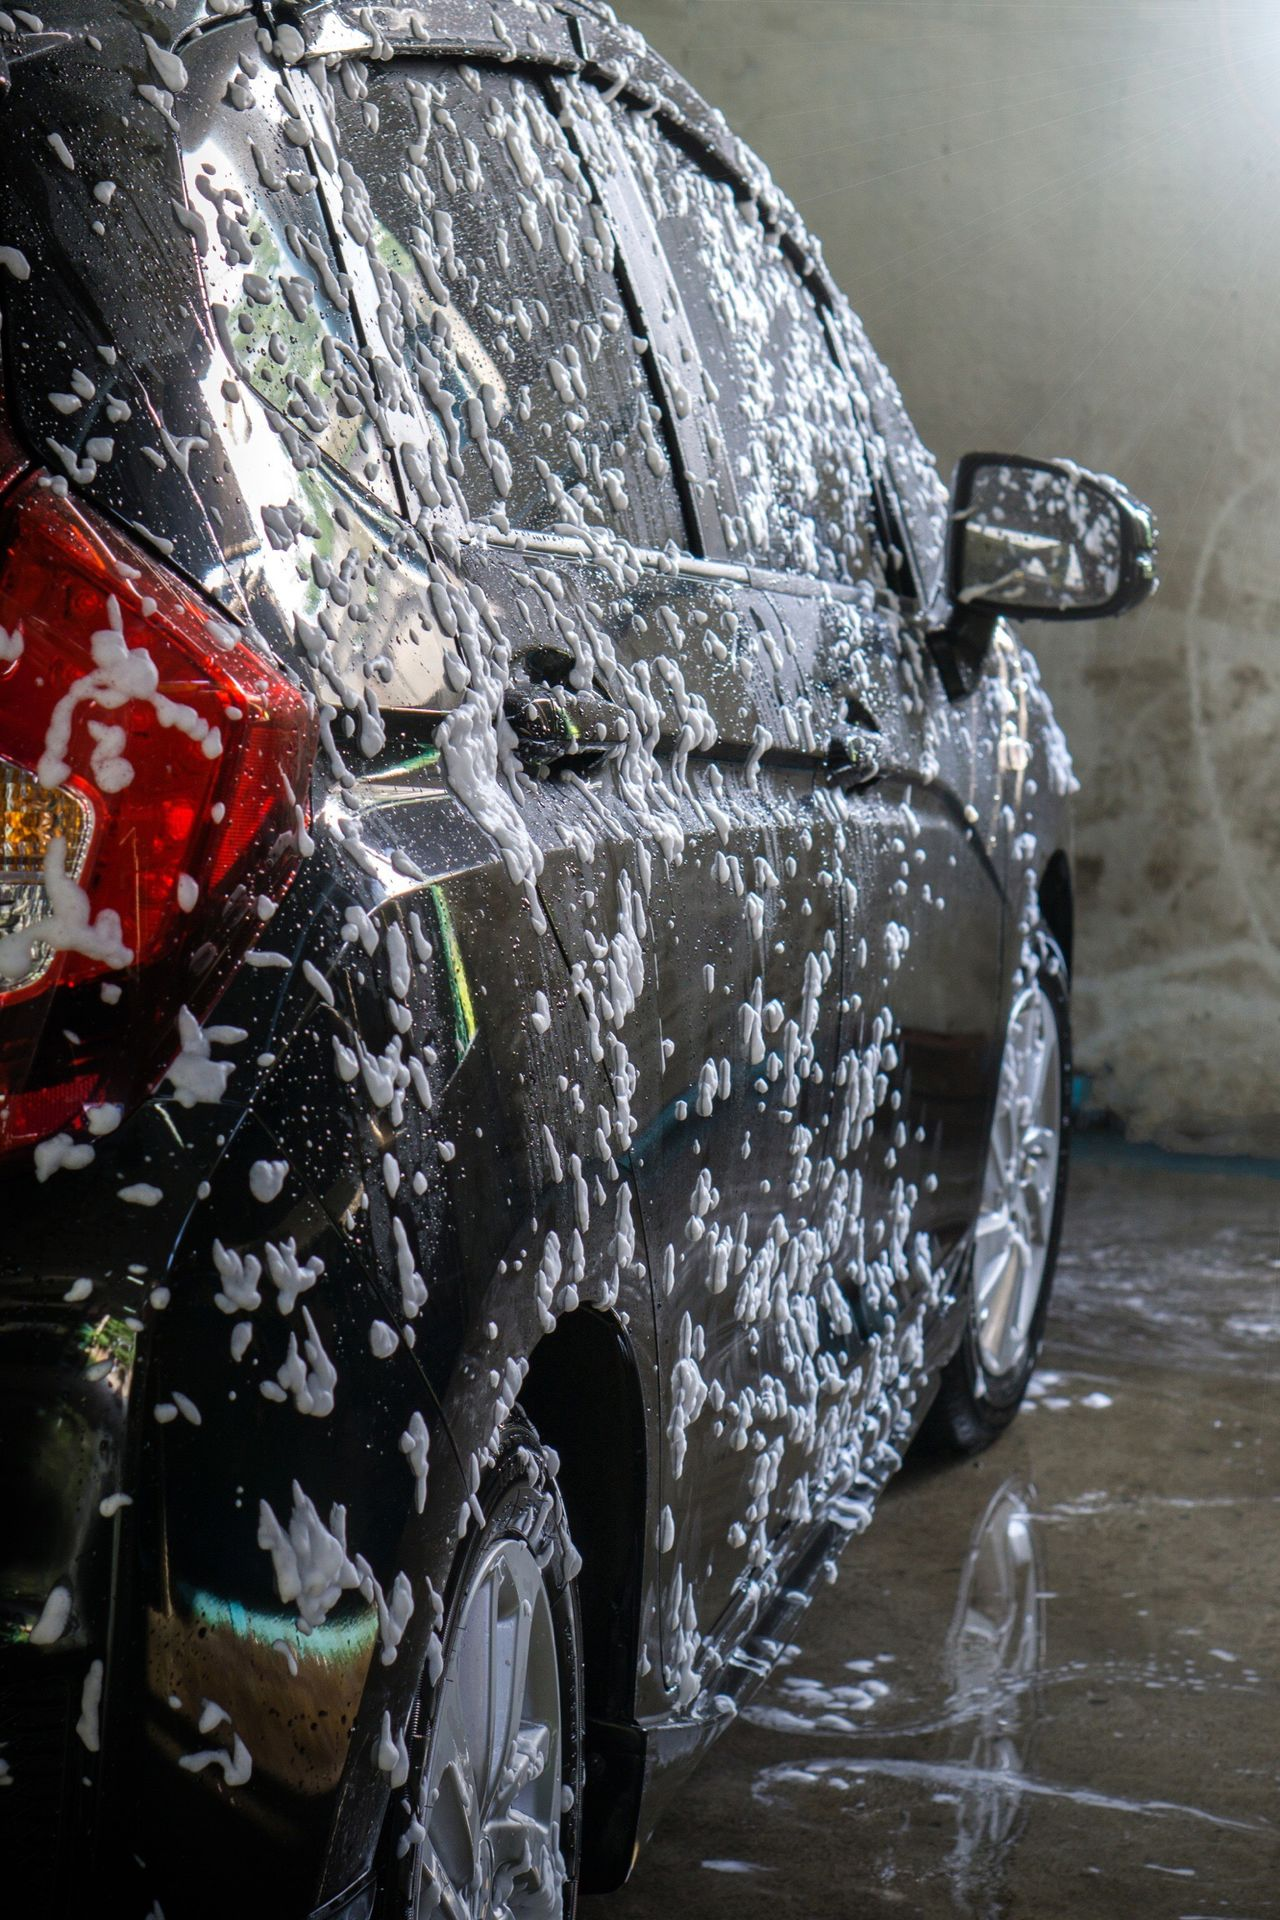 Car Carwash Car Washing Car Wash Auto Automobile Transportation Black Water Day Outdoors No People Close-up Clean Bubble Bubble Soap Soap Soap Bubbles Soap Sud Soapbubble Soap Bubble Cleaning